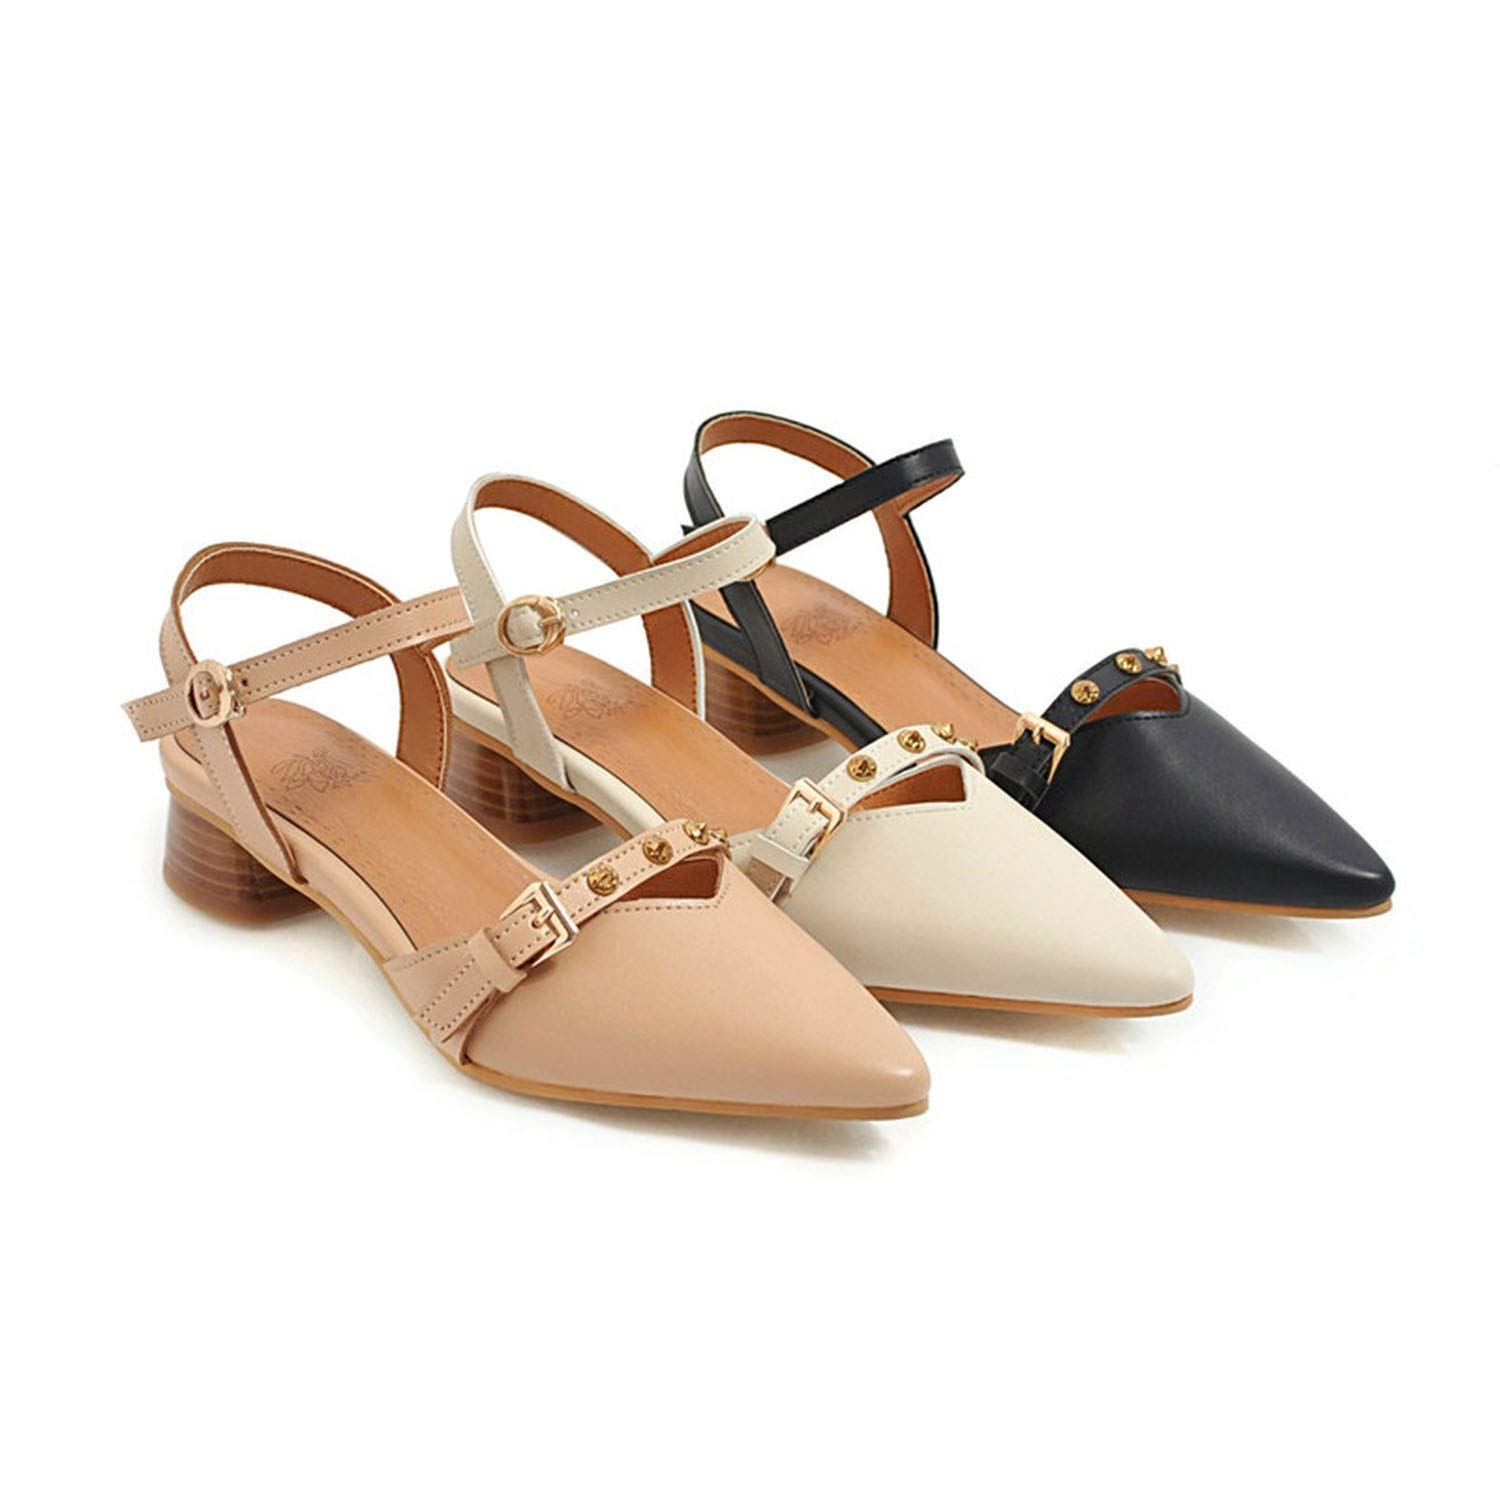 Summer Shoes Women Sandals Buckle Pointed Toe Square Heels Shoes Lady Rivet Shoes Big Size 48